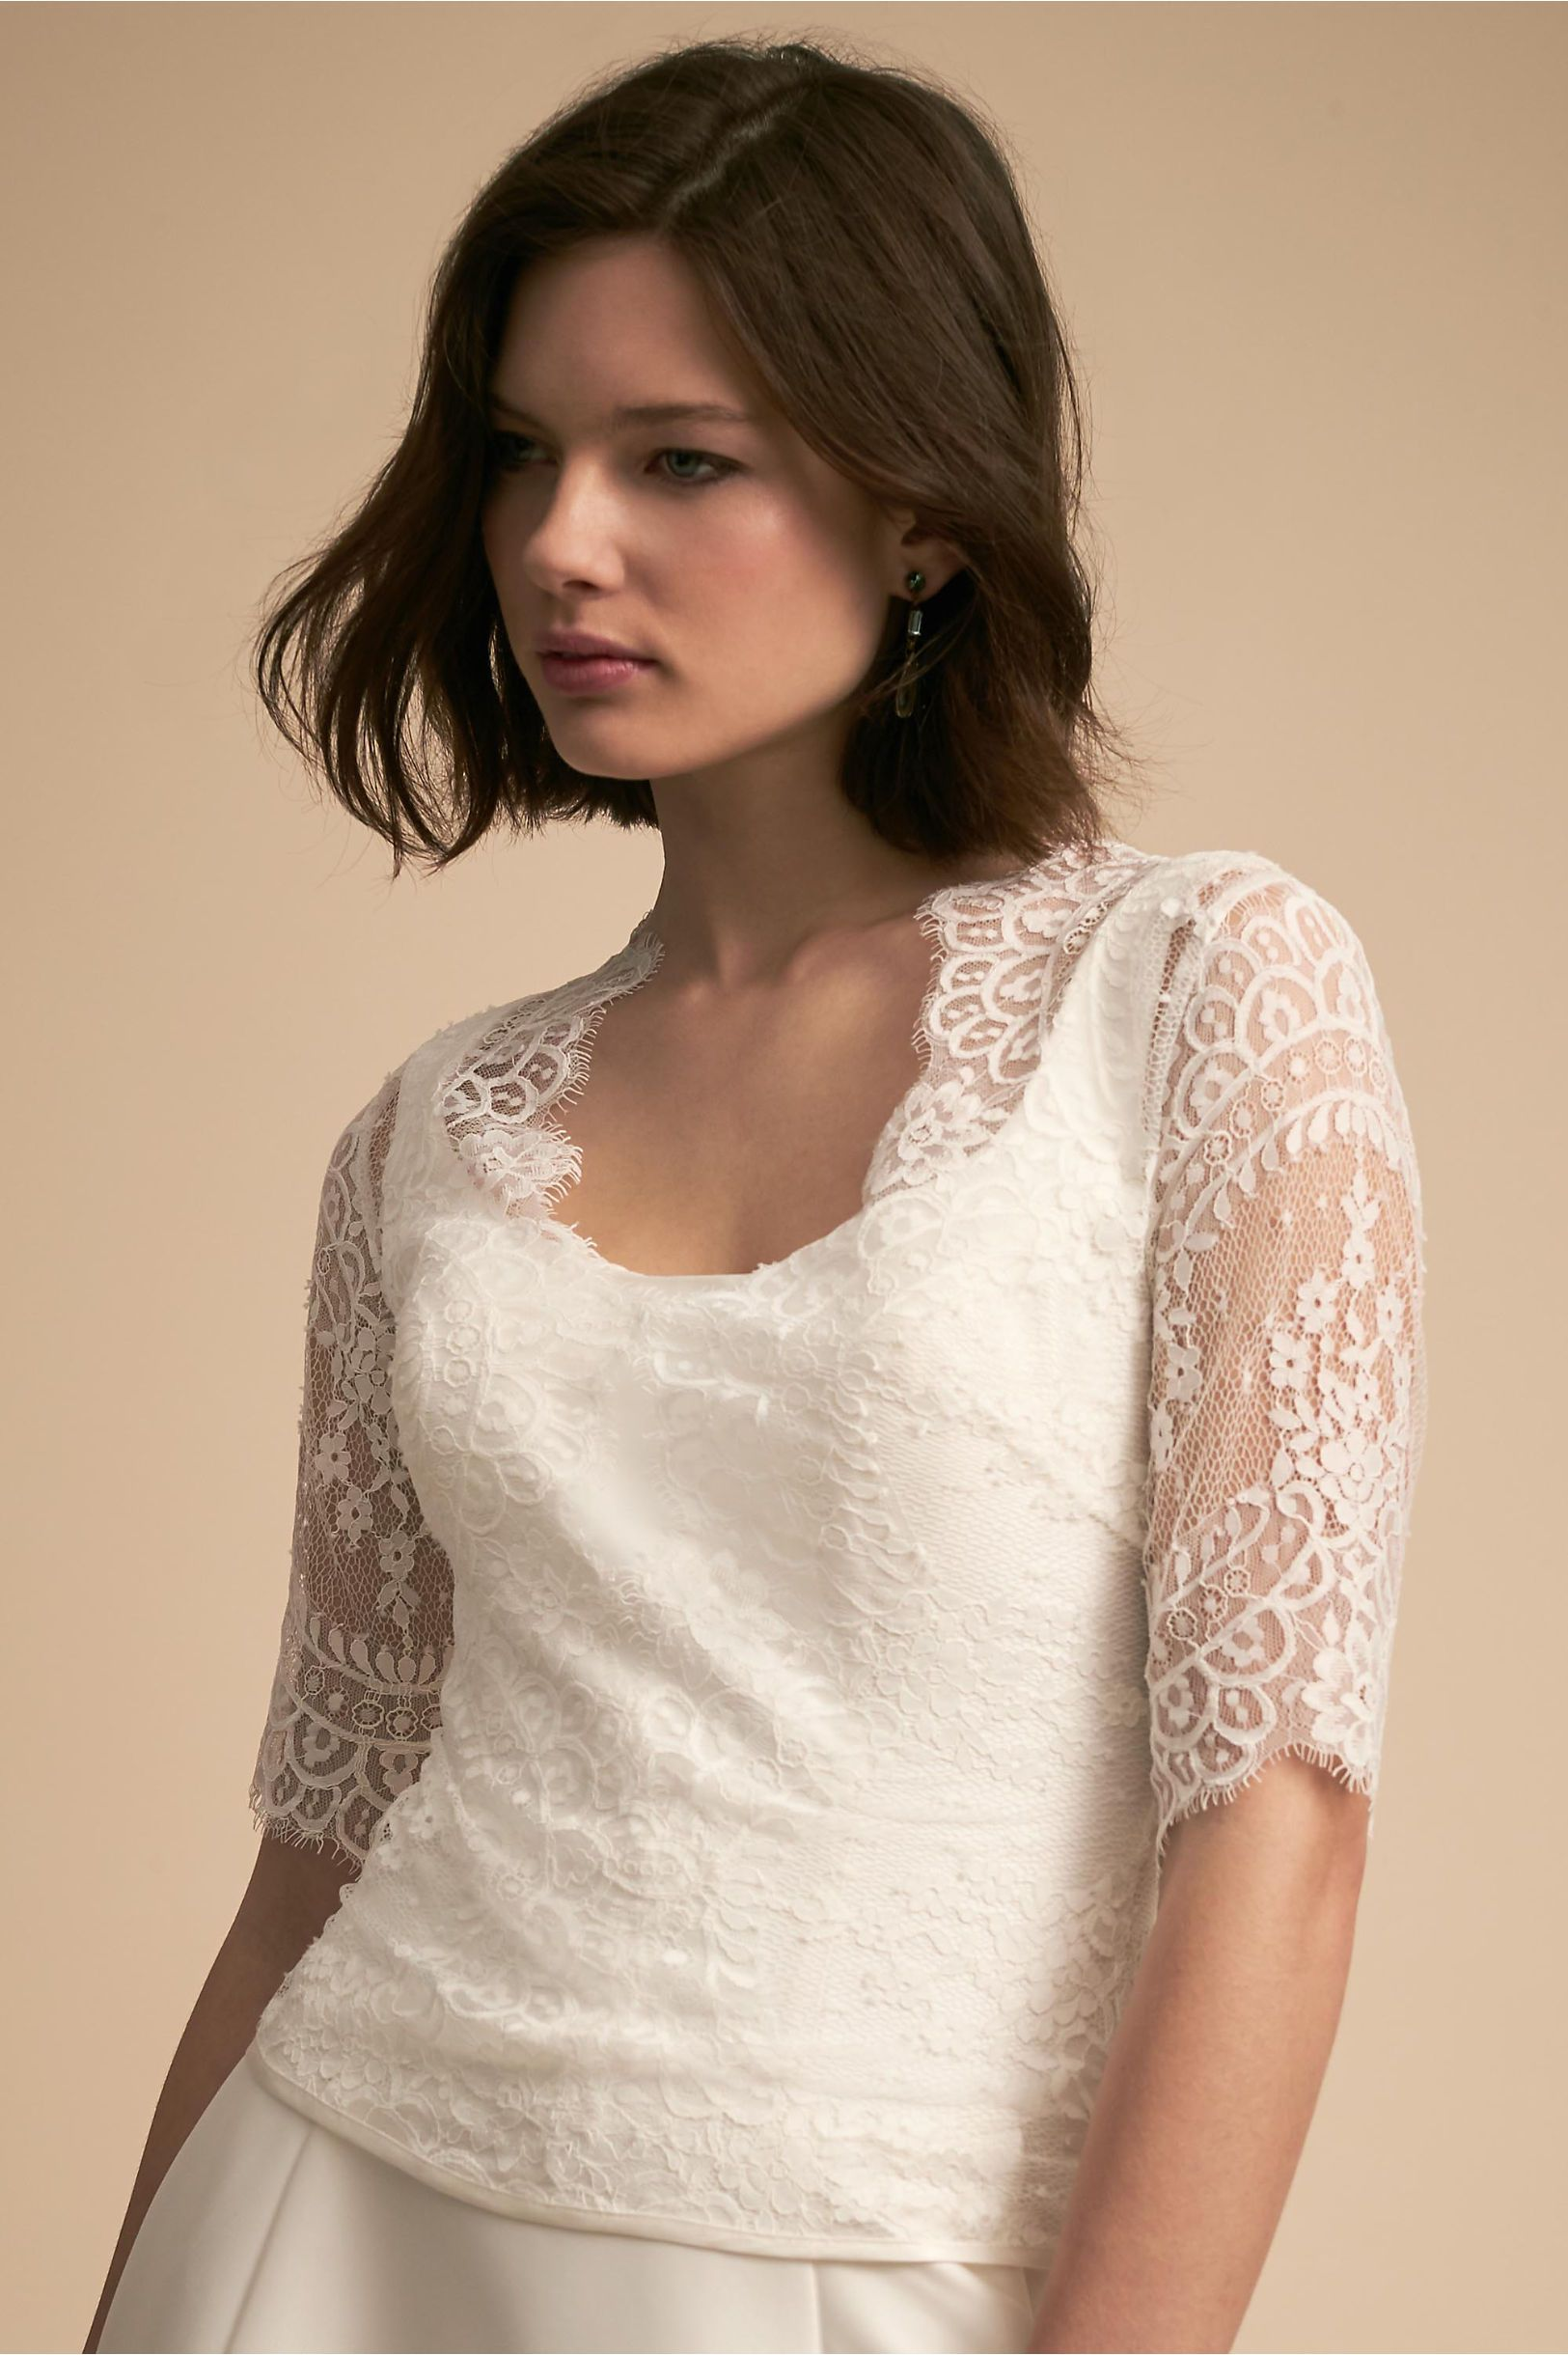 BHLDN Kelis Topper Ivory in Bride | BHLDN | Wedding Dress Ideas ...